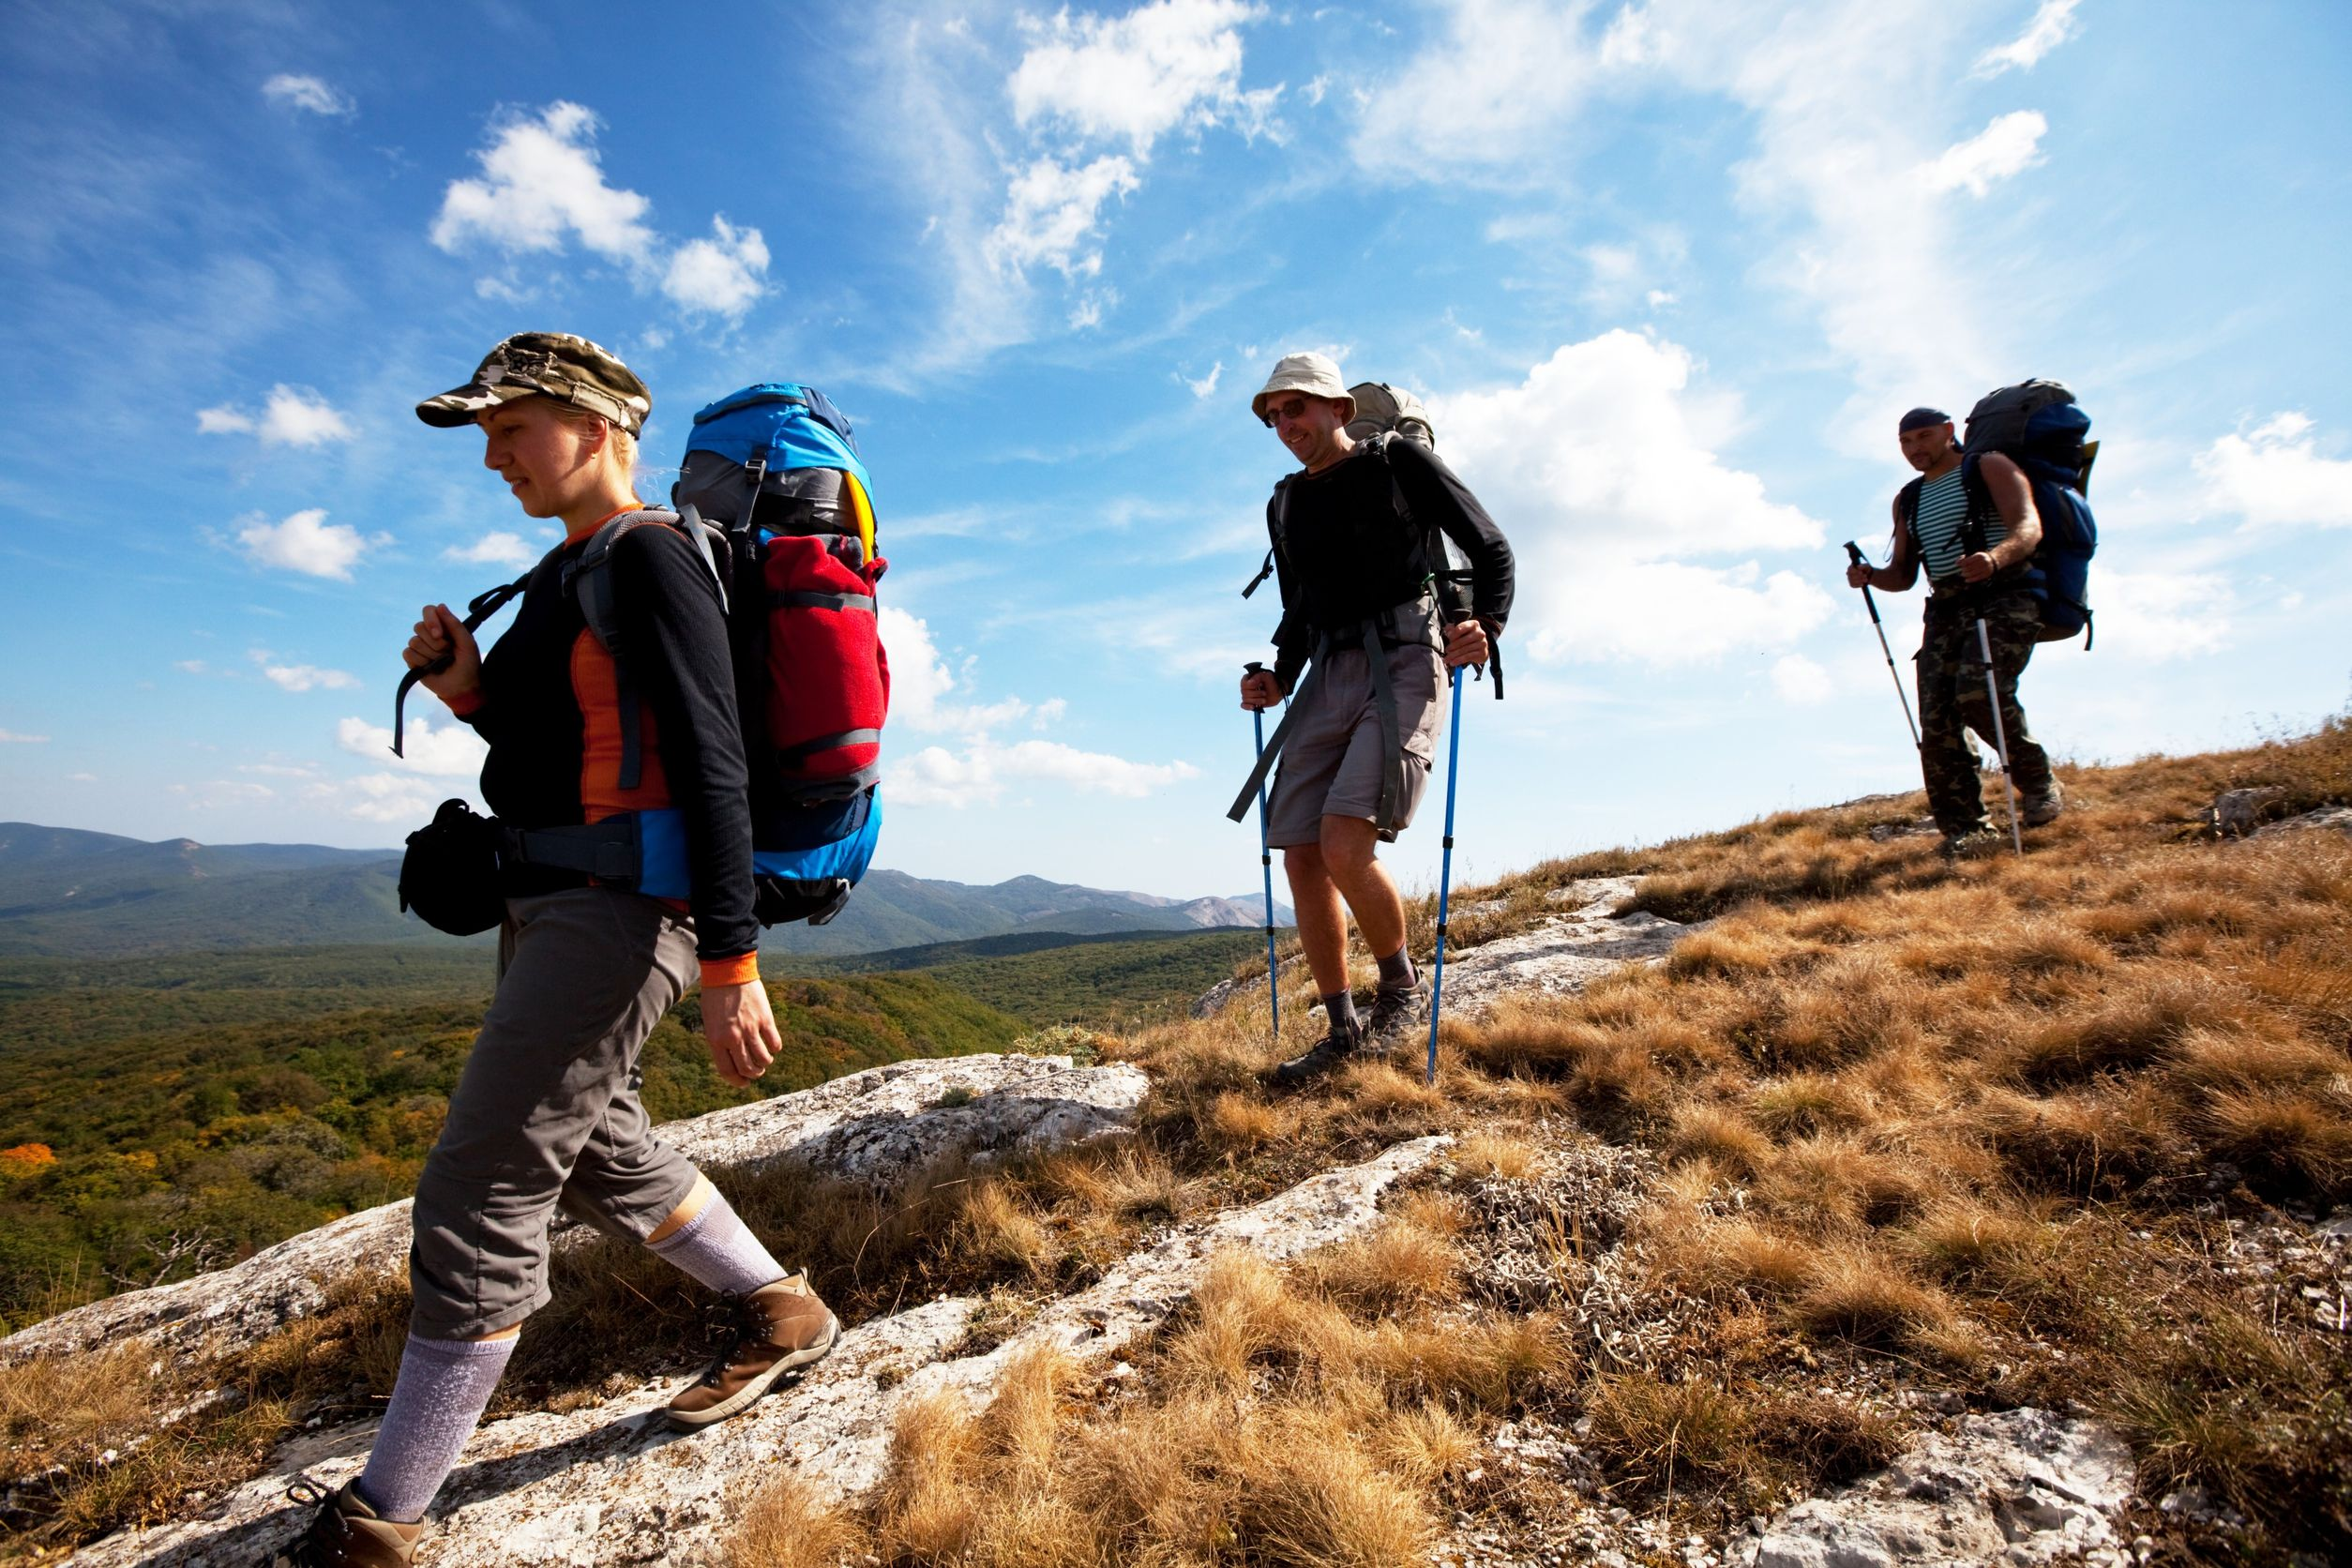 Hiking Tips – Safety, Equipment and Hiking Gear